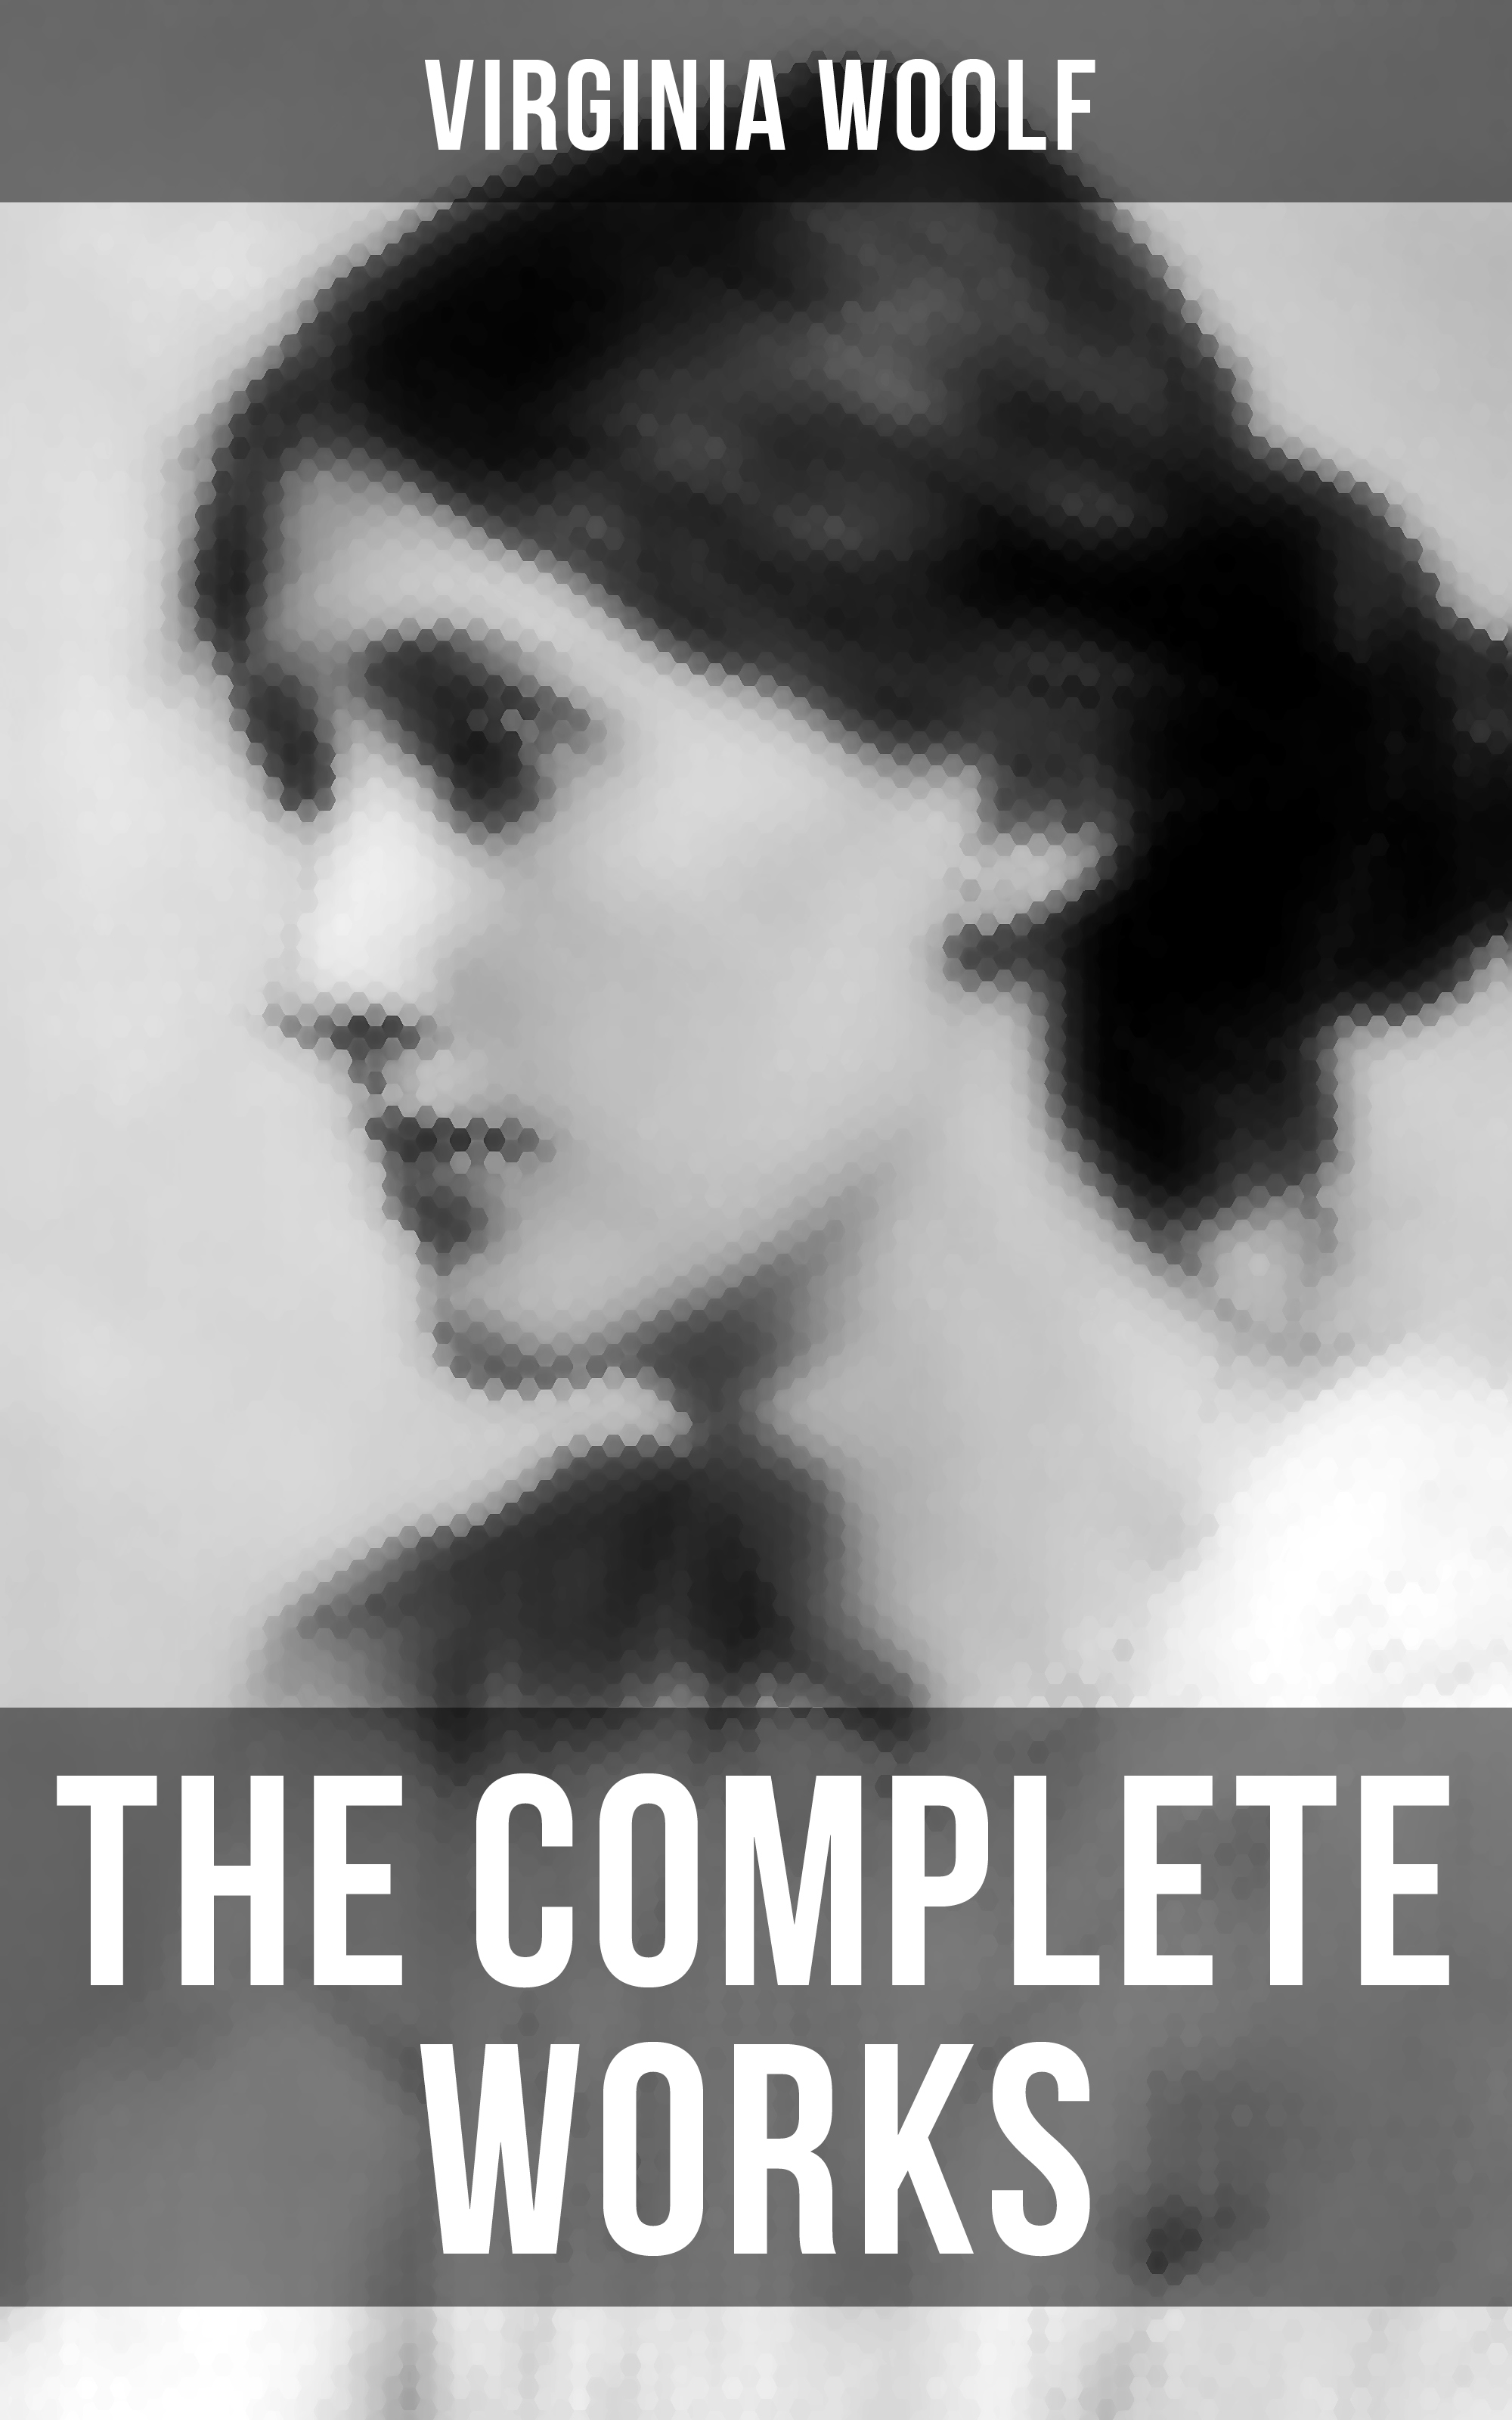 Virginia Woolf Virginia Woolf: The Complete Works virginia woolf the complete novels of virginia woolf 9 unabridged novels